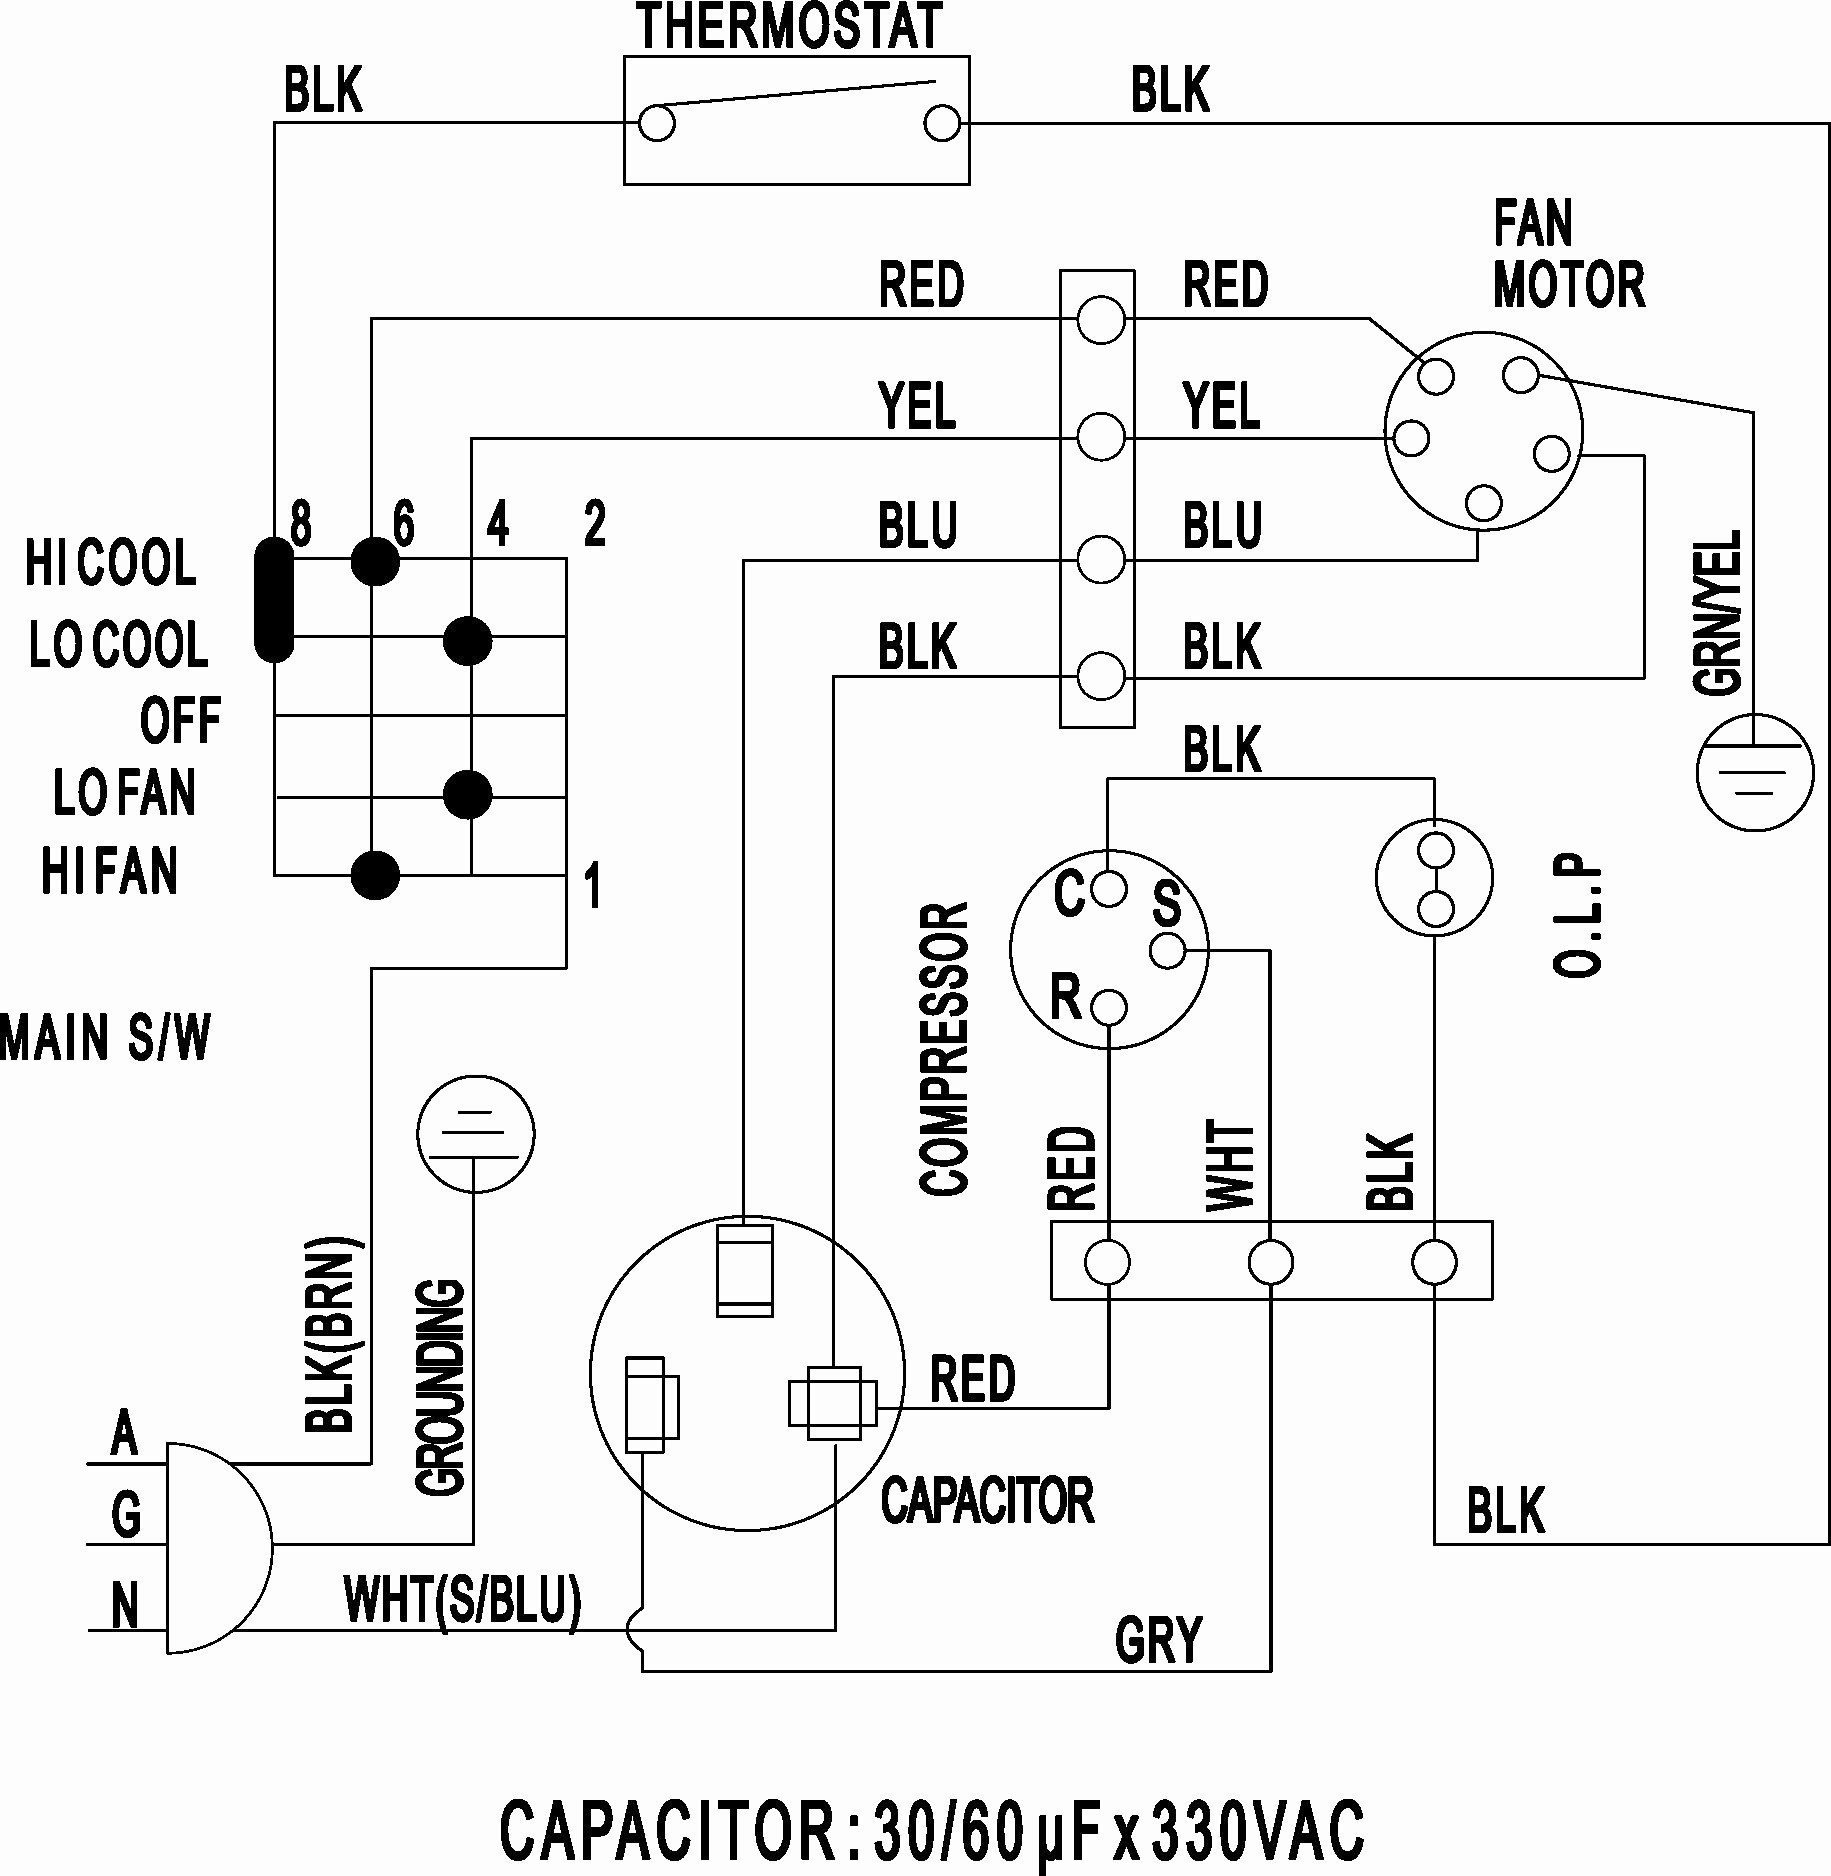 split system wiring diagram split air conditioner wiring diagram sample split coil wiring diagram toggle switch #13